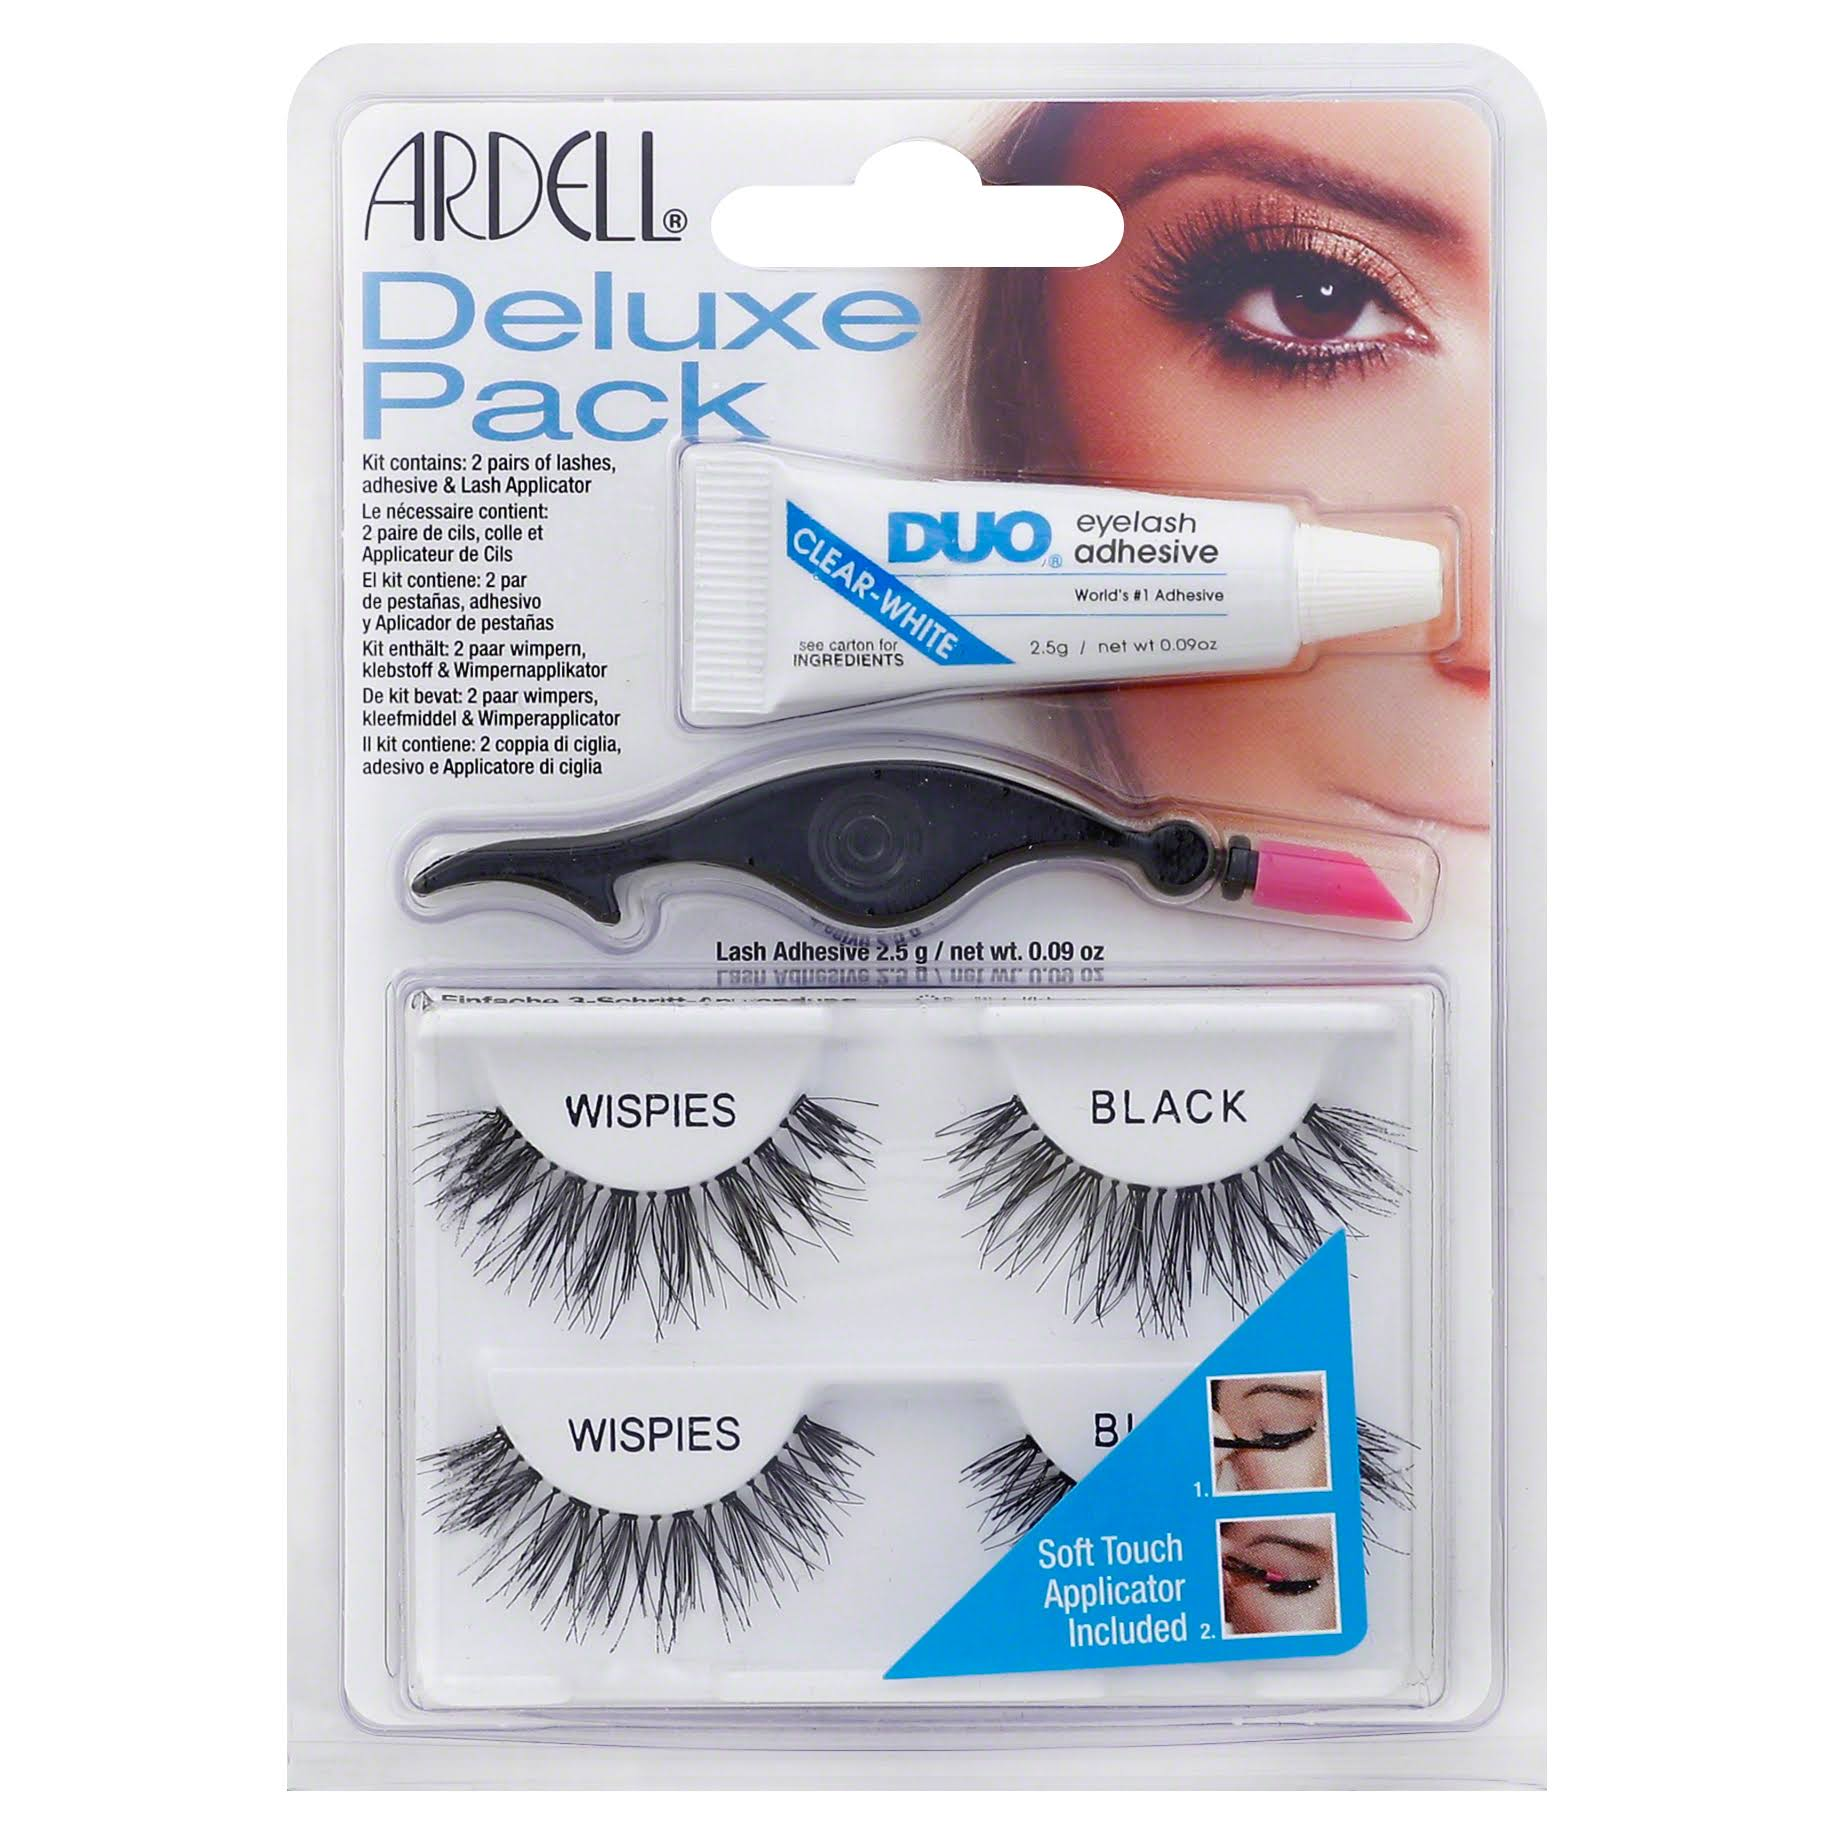 Ardell Deluxe Pack Wispies Black Lashes - Glue and Applicator